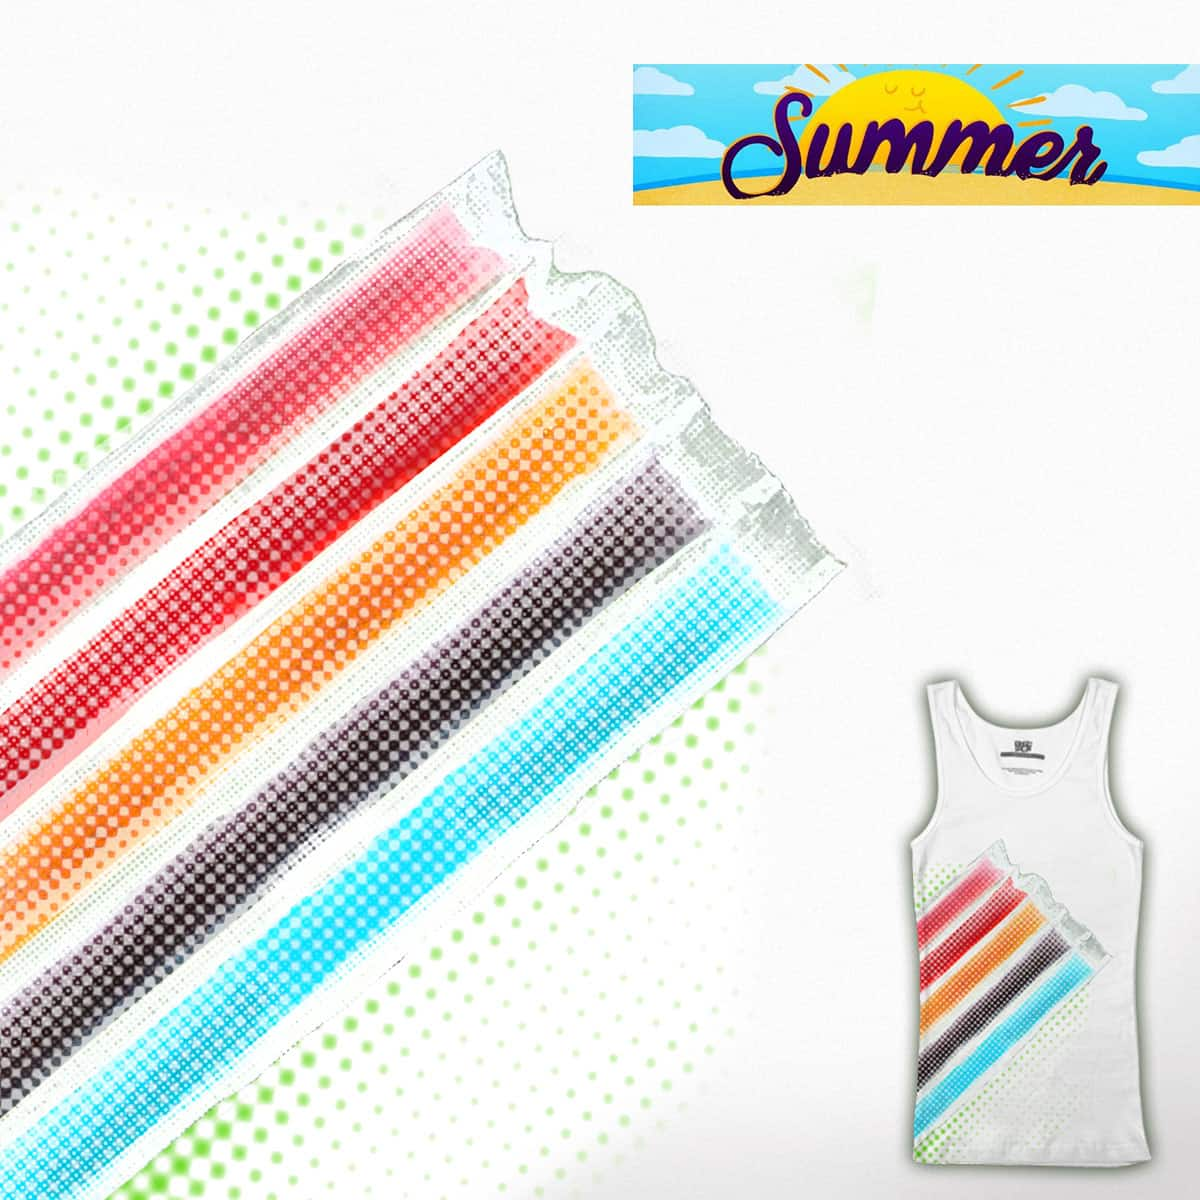 Freezer Pop-Art by dhrdesign on Threadless